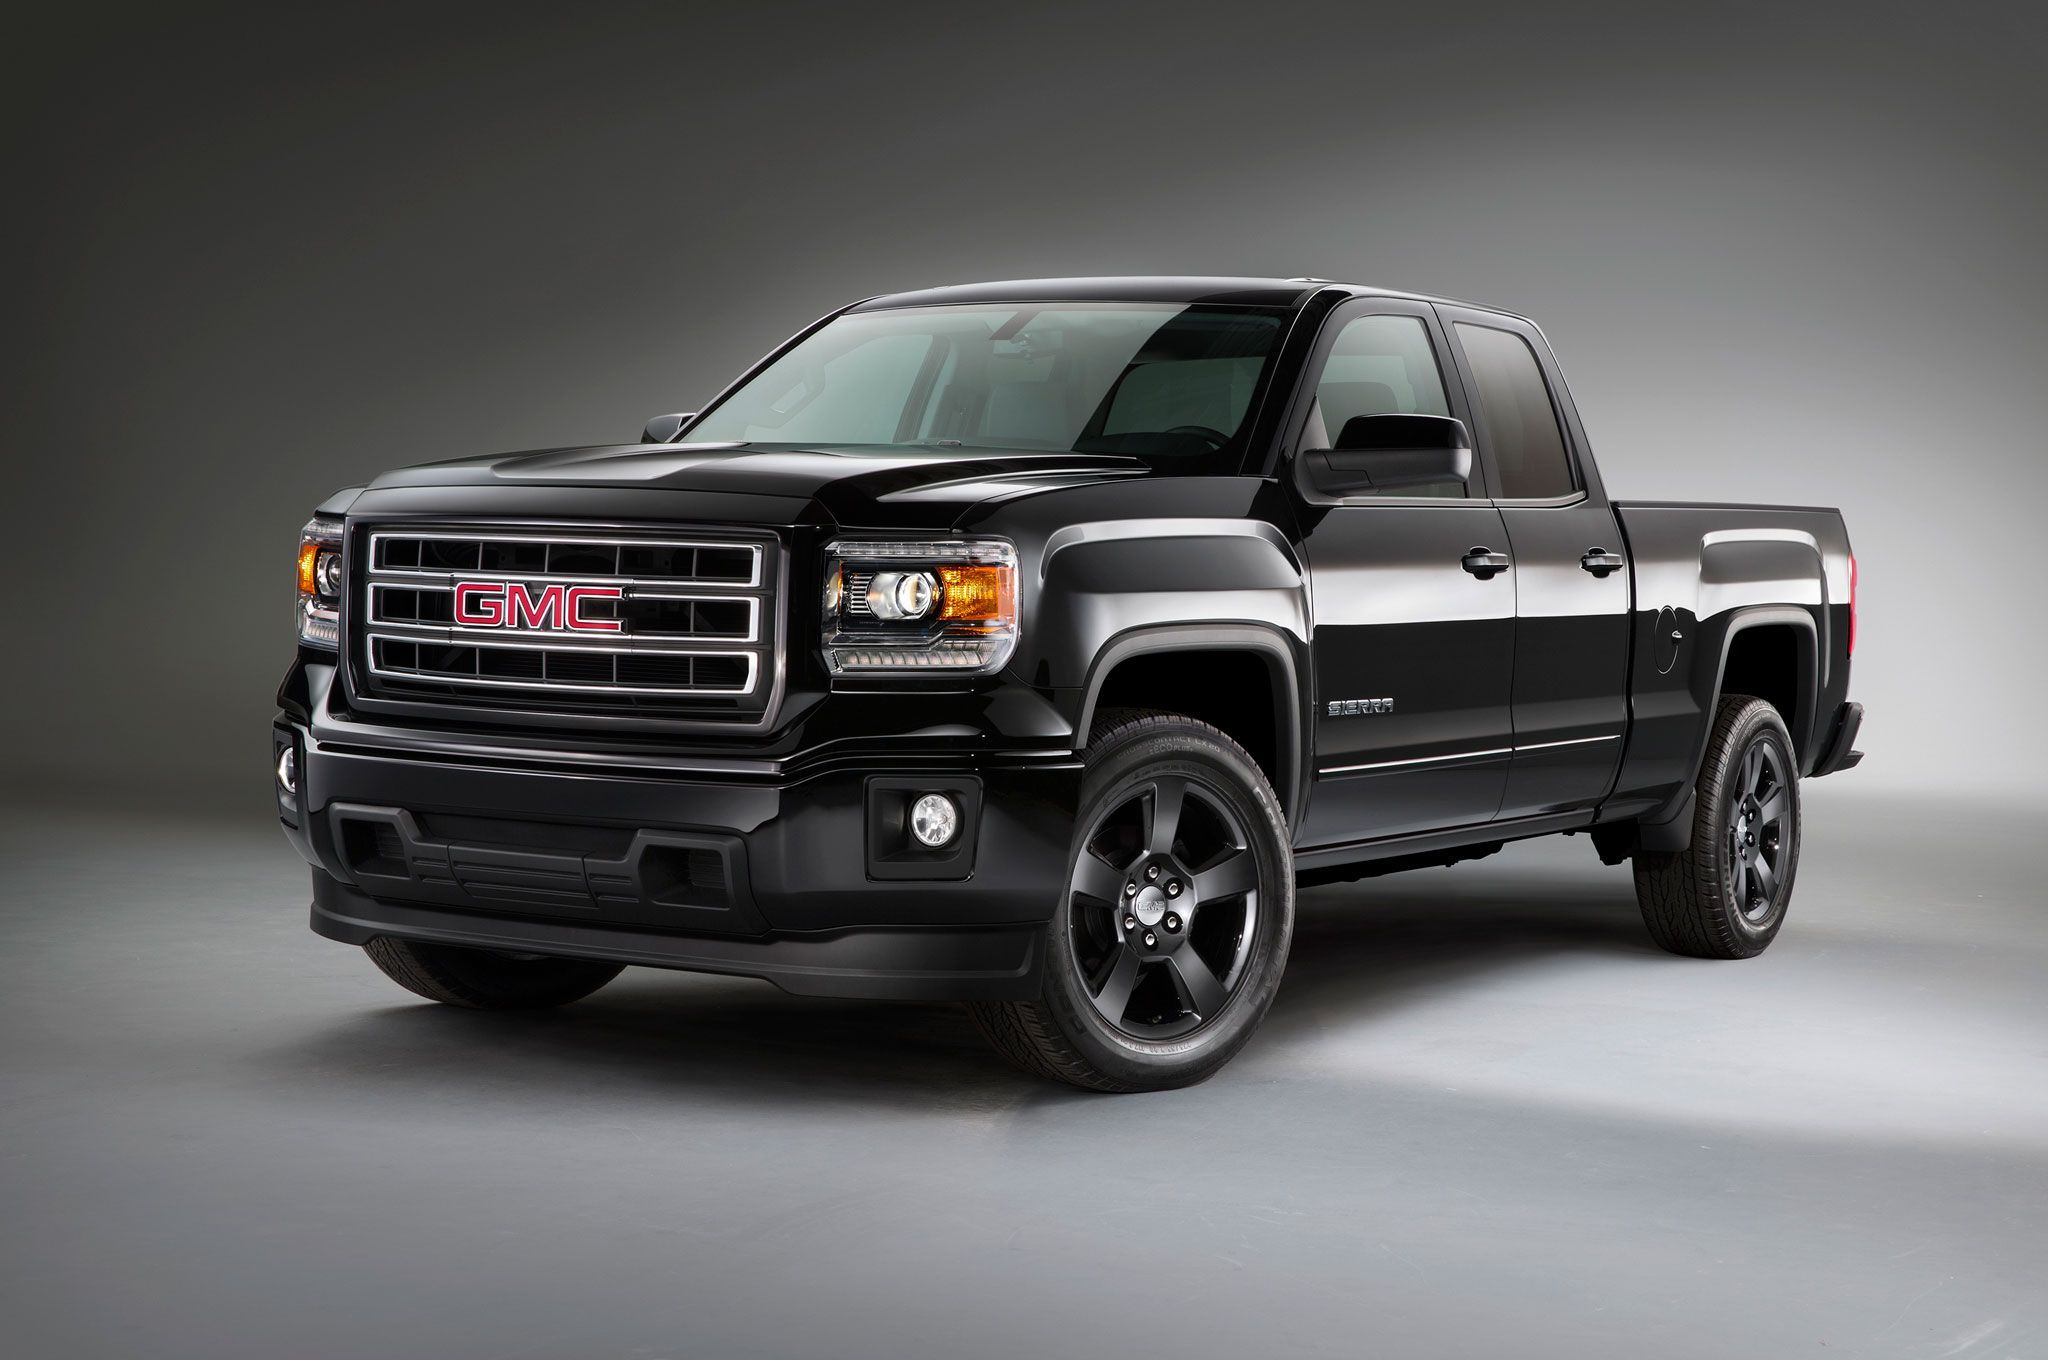 2015 Gmc Sierra 1500 Cars Pictures Http Carwallspaper Com